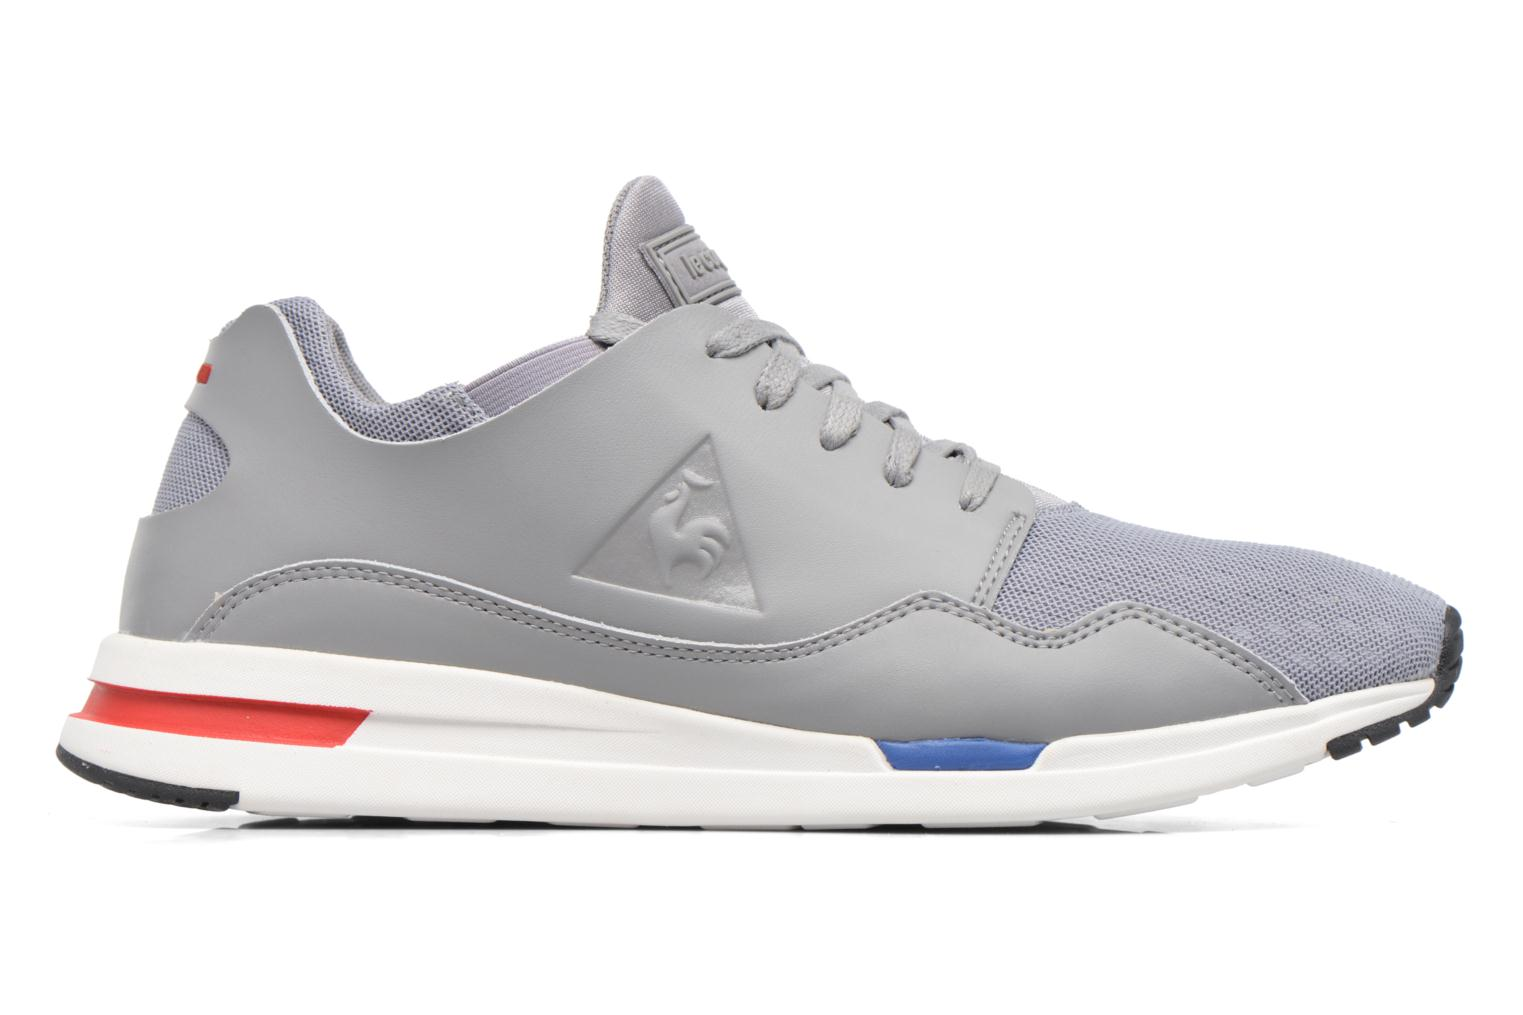 LCS R Pure frost gray